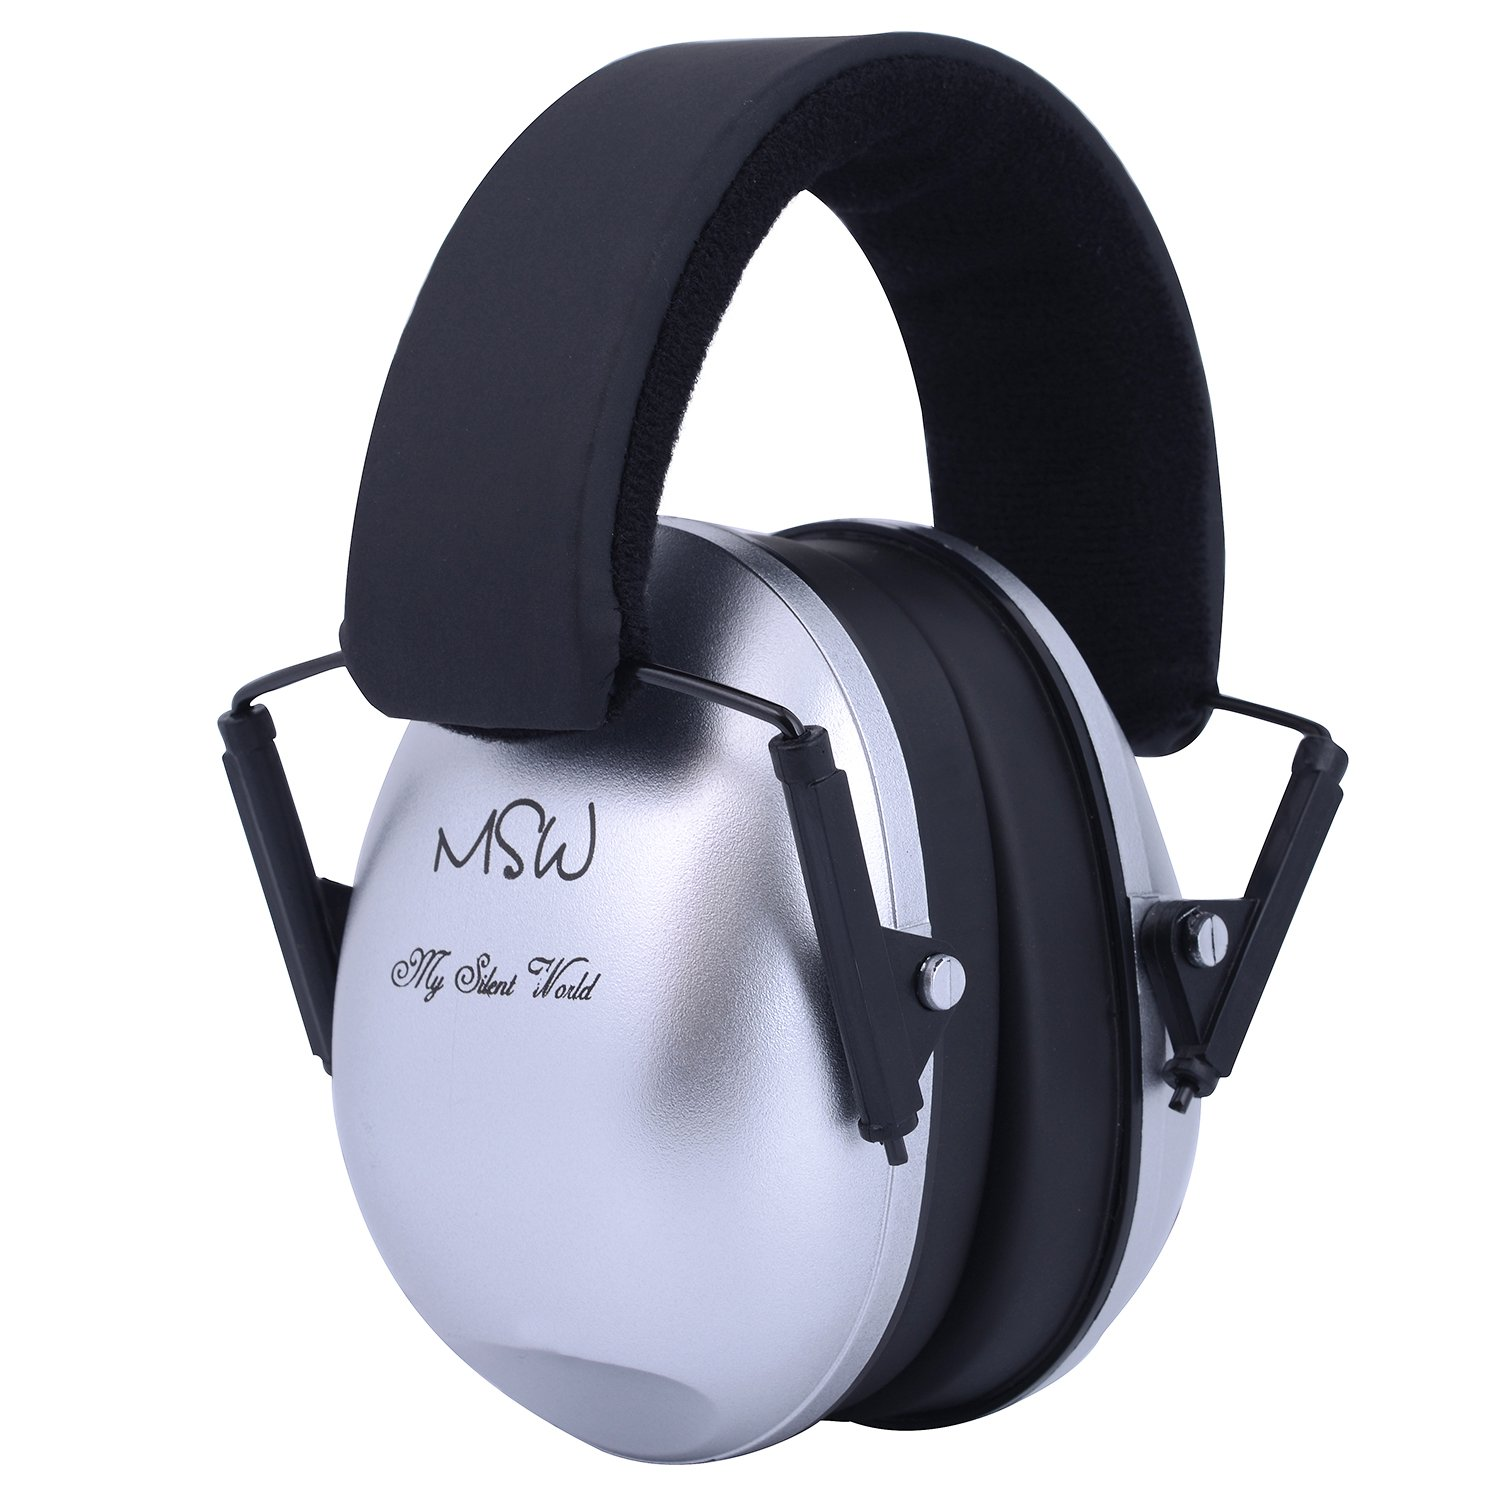 Kids Ear Protection Safety Ear Muffs, Adjustable Noise Reduction Ear Defenders for Studying Fireworks Construction Shooting Hunting Season, Suitable for Kids Small Adults, Silver